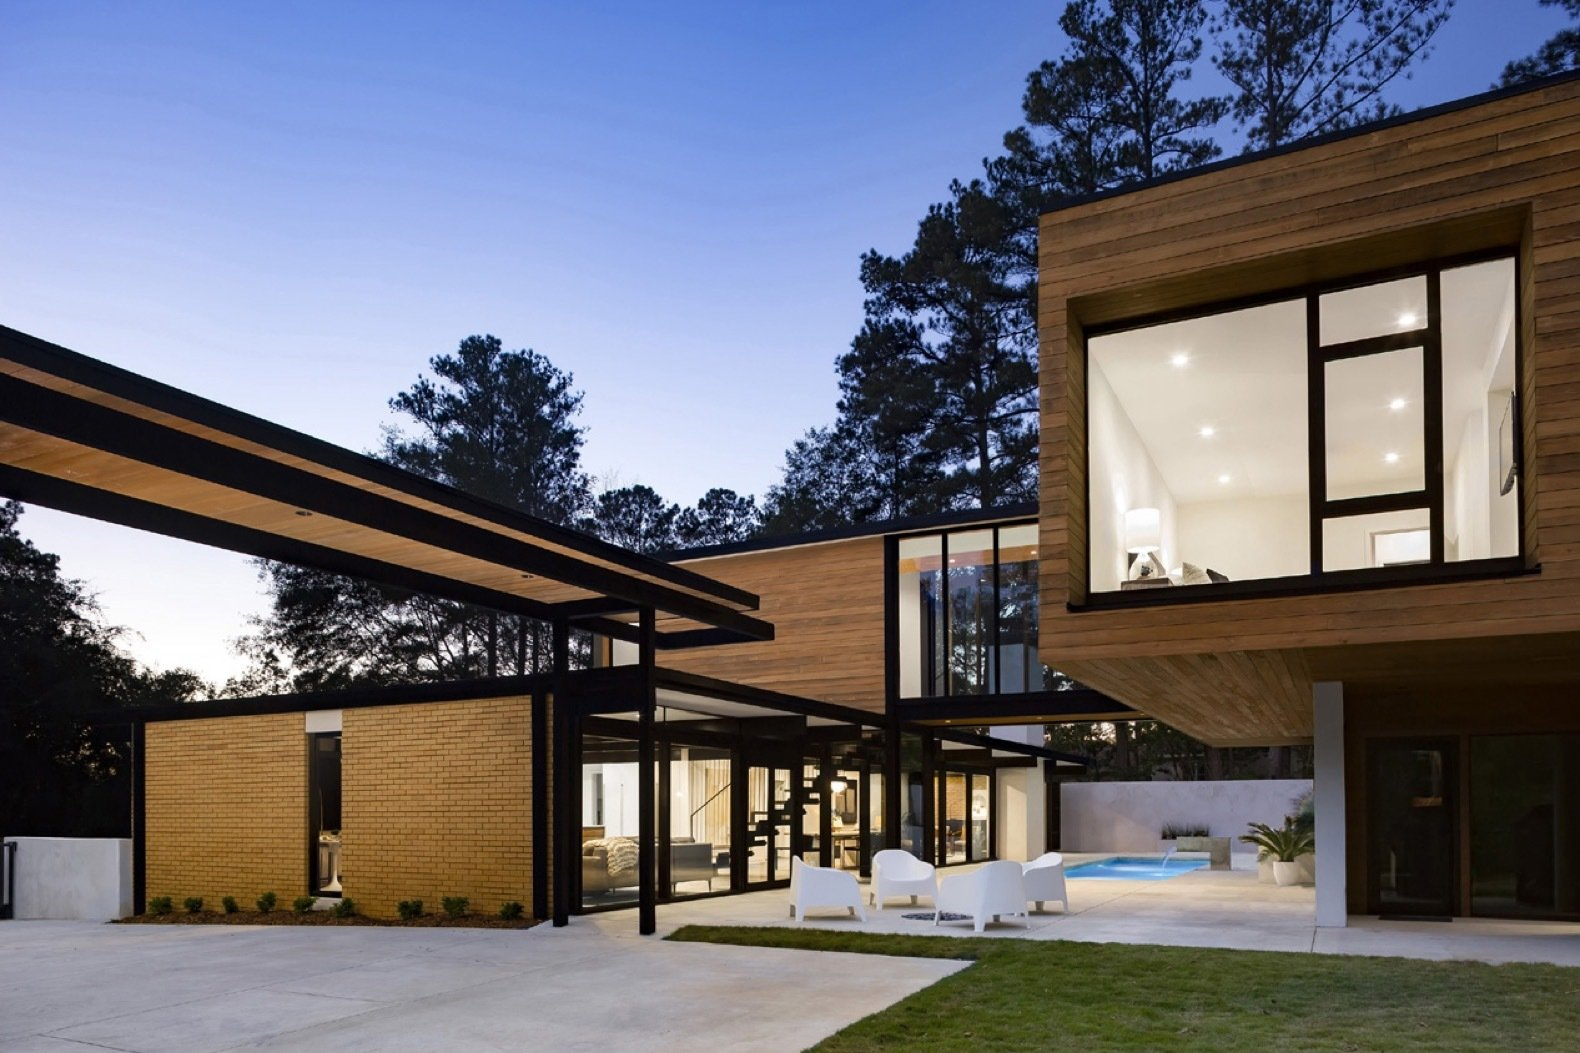 Before & After: A Glass Bridge Links an Alabama Midcentury to a Strategic Expansion